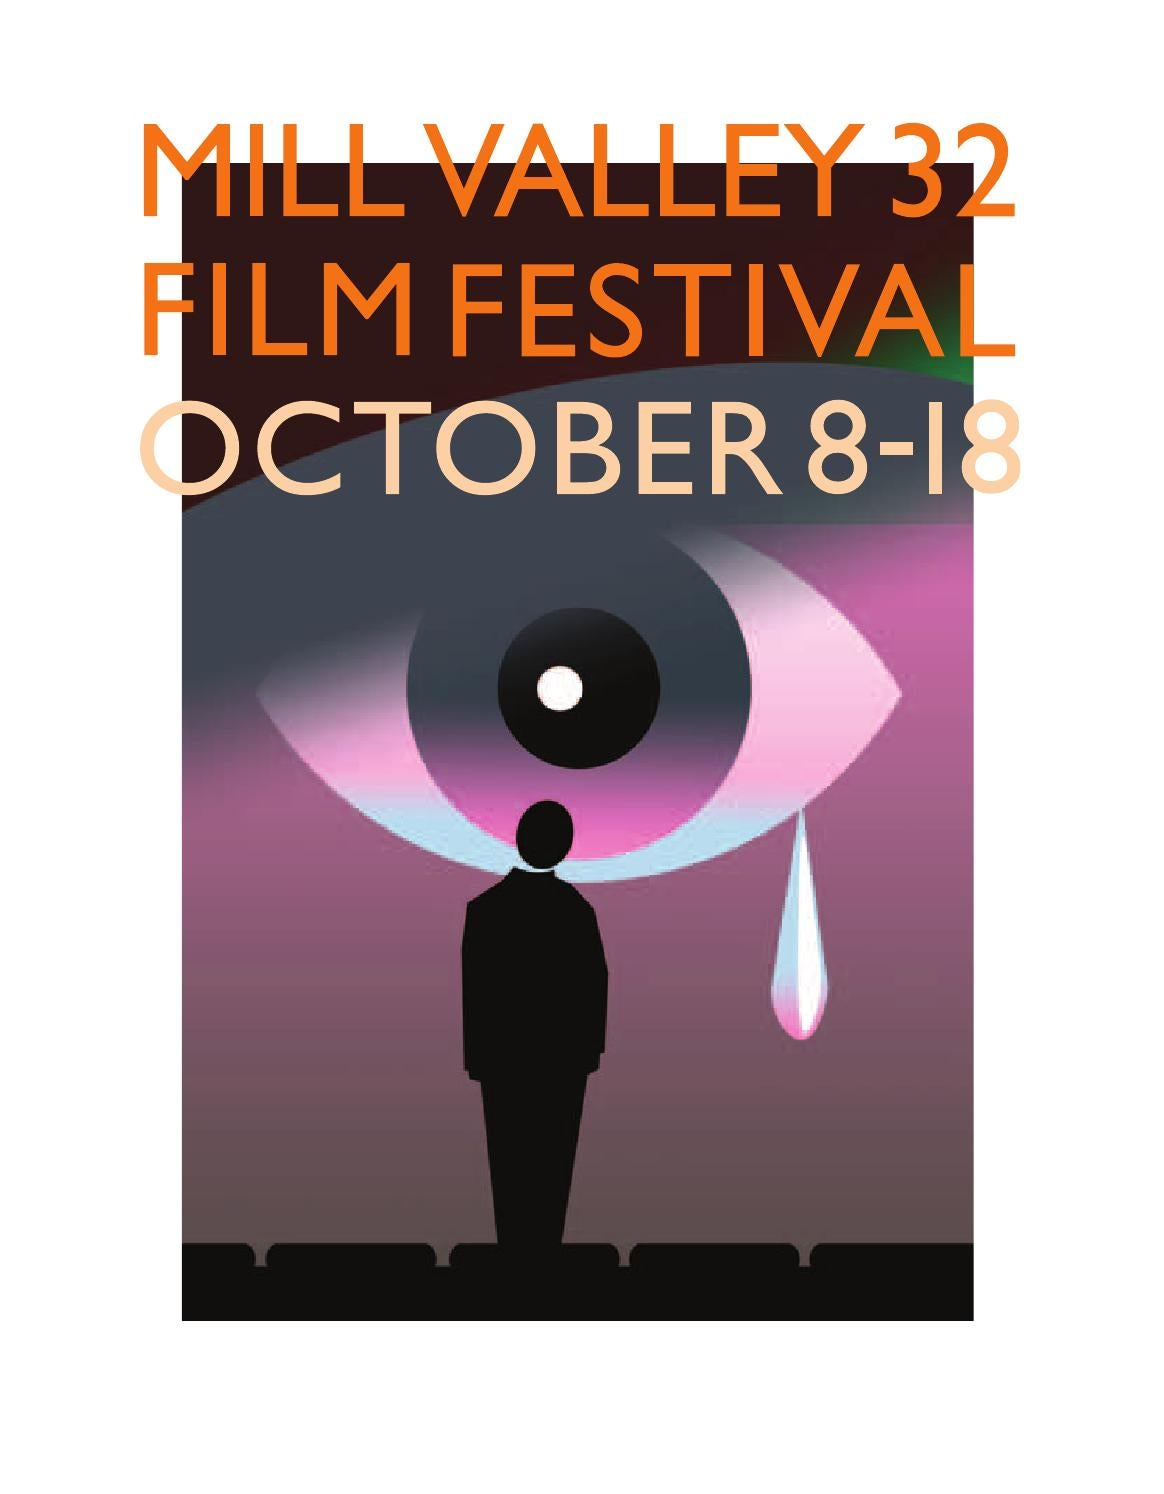 Haas+sohn Kaminofen Varese Test Mvff32 Schedule By Mvff Issuu